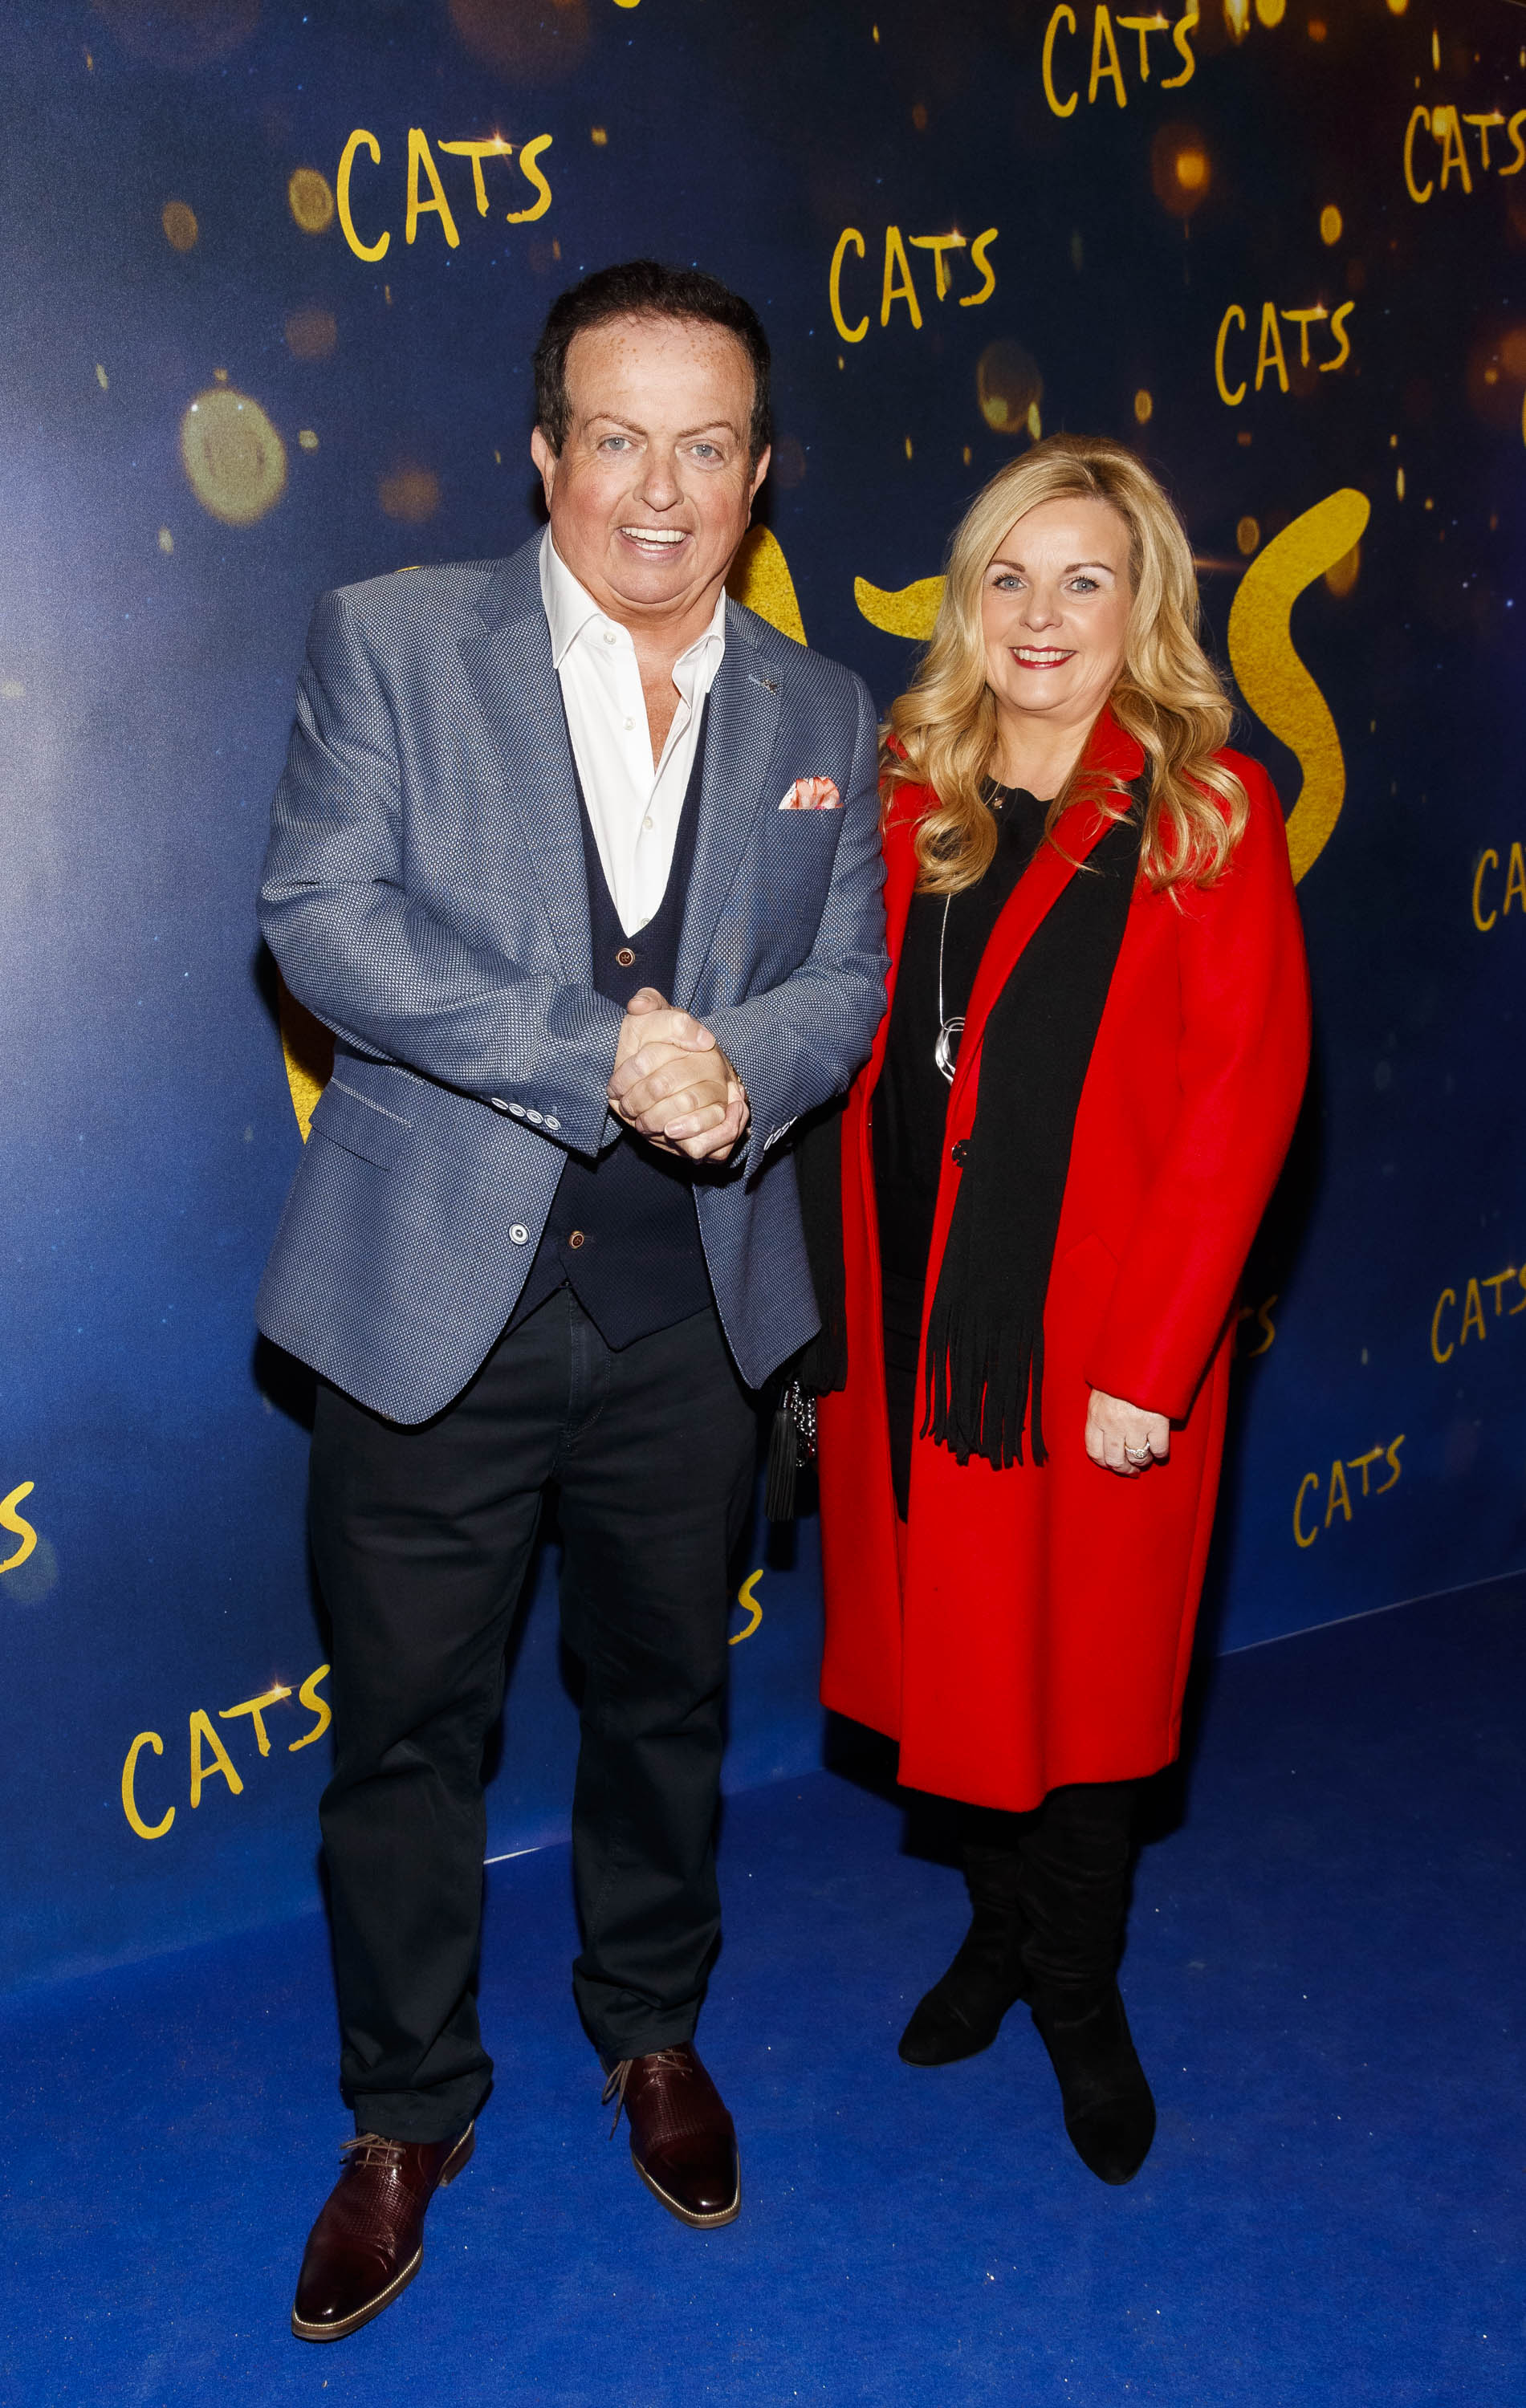 Marty Morrissey and Liz Kidney pictured at the Irish premiere screening of 'Cats' at The Stella Theatre, Rathmines. Picture: Andres Poveda